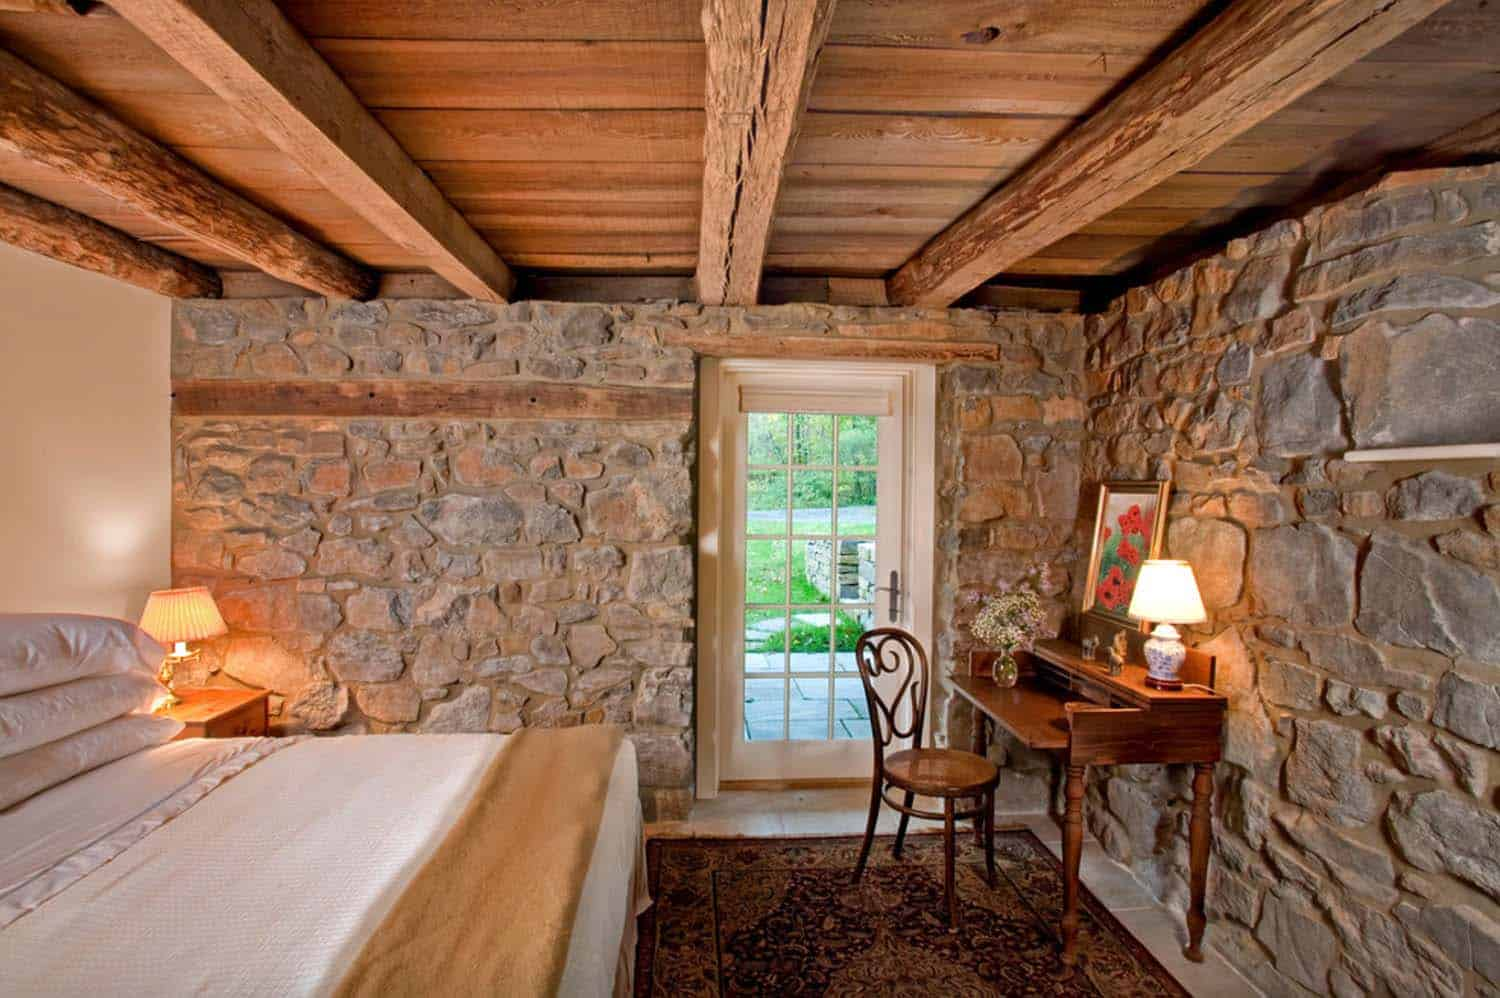 remodeled-barn-guest-bedroom-on-the-lower-level-farmhouse-bedroom